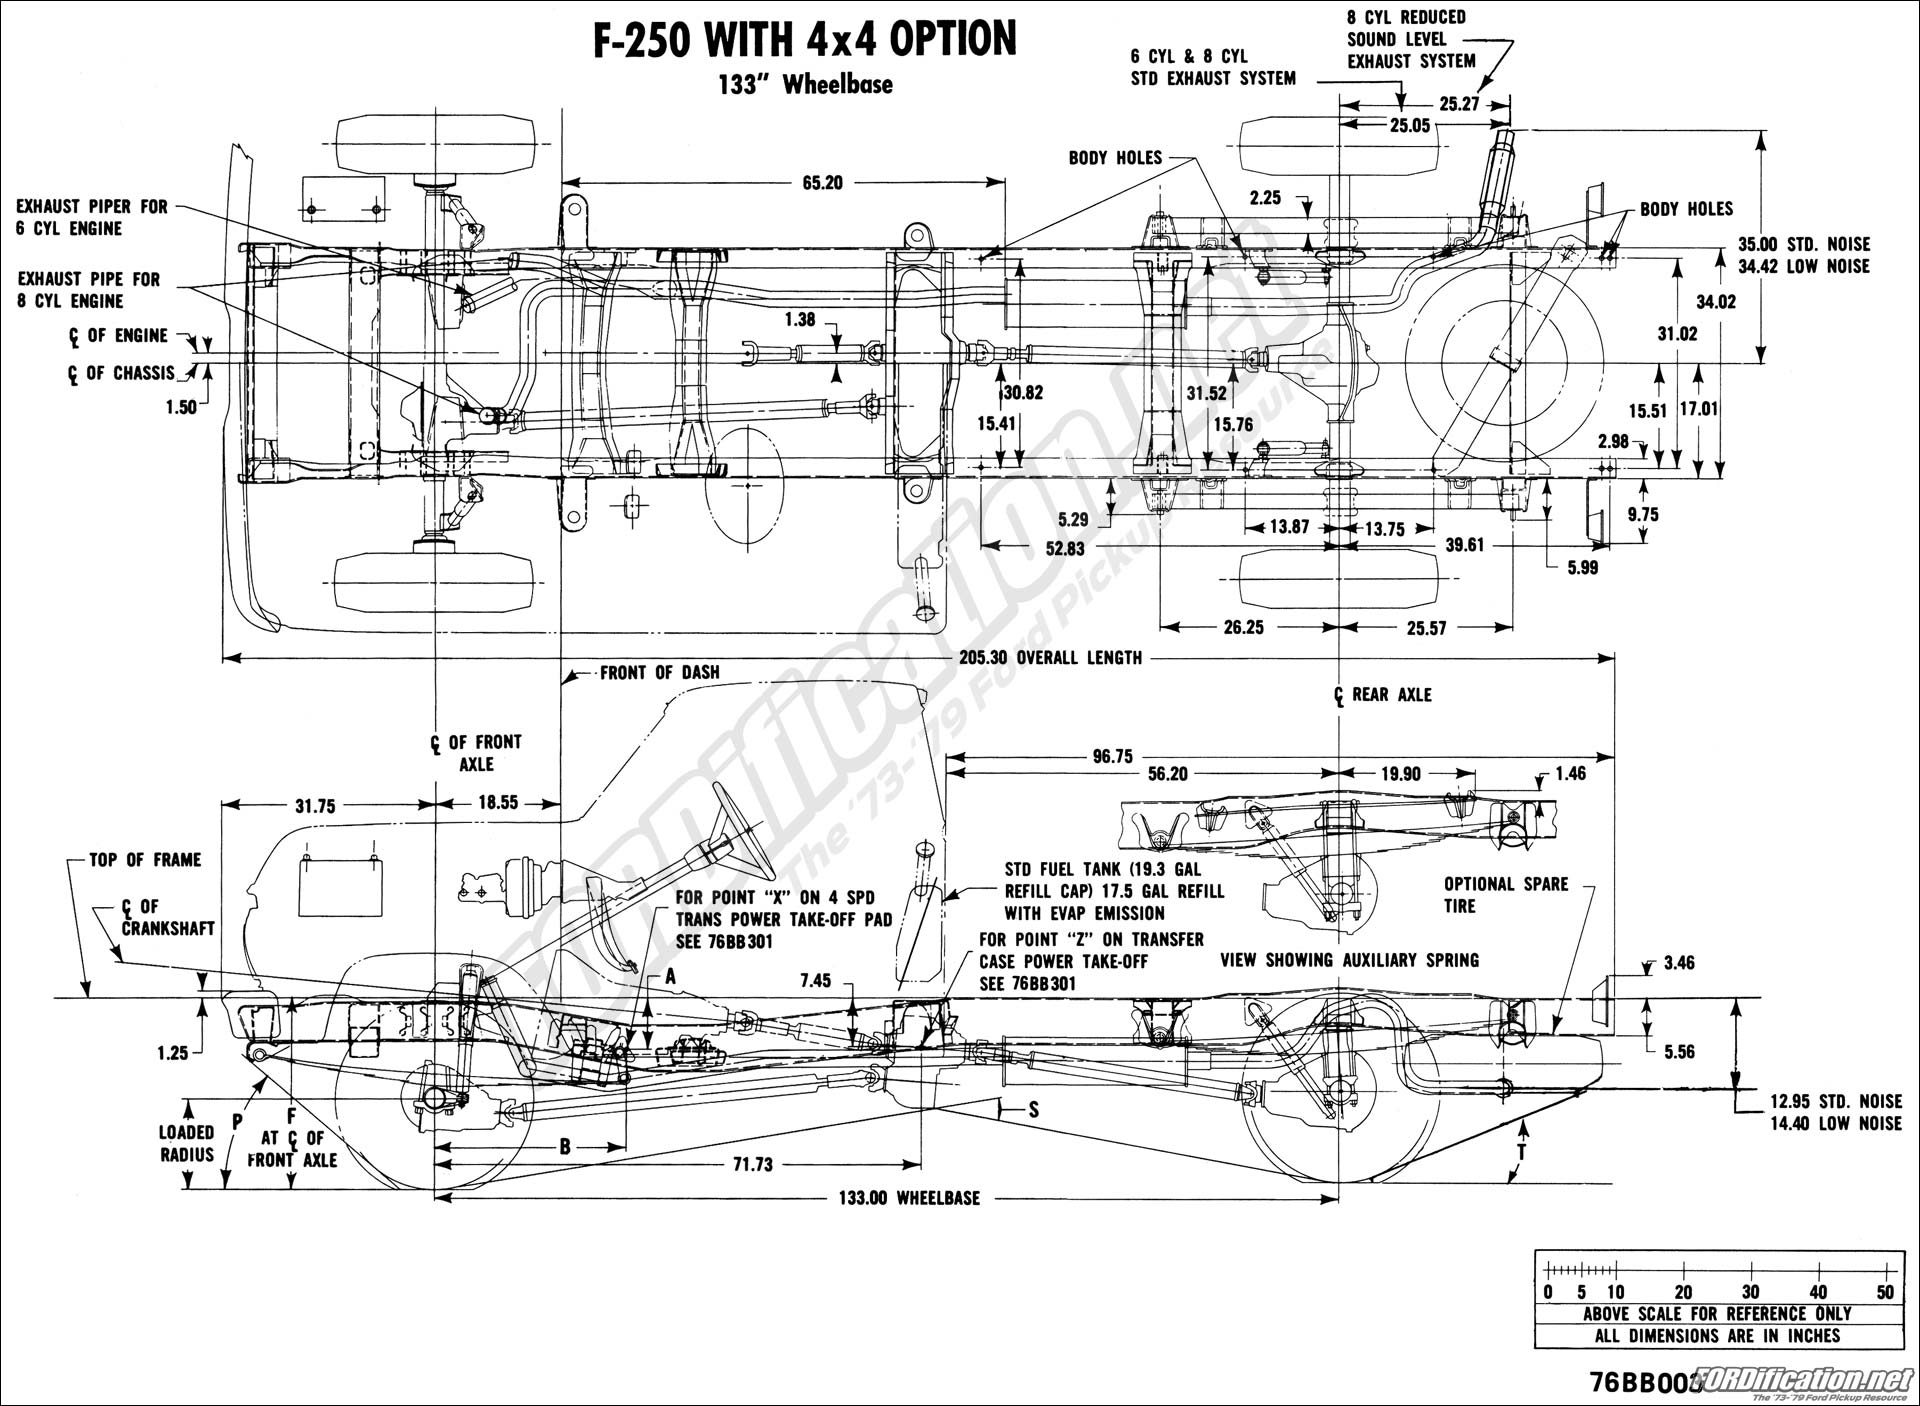 1994 F 250 Frame Diagram Download Wiring Diagrams 7 3 Idi 1996 Ford F250 Search For U2022 Rh Idijournal Com 73 Turbo Boot Powerstroke Diesel Transmission